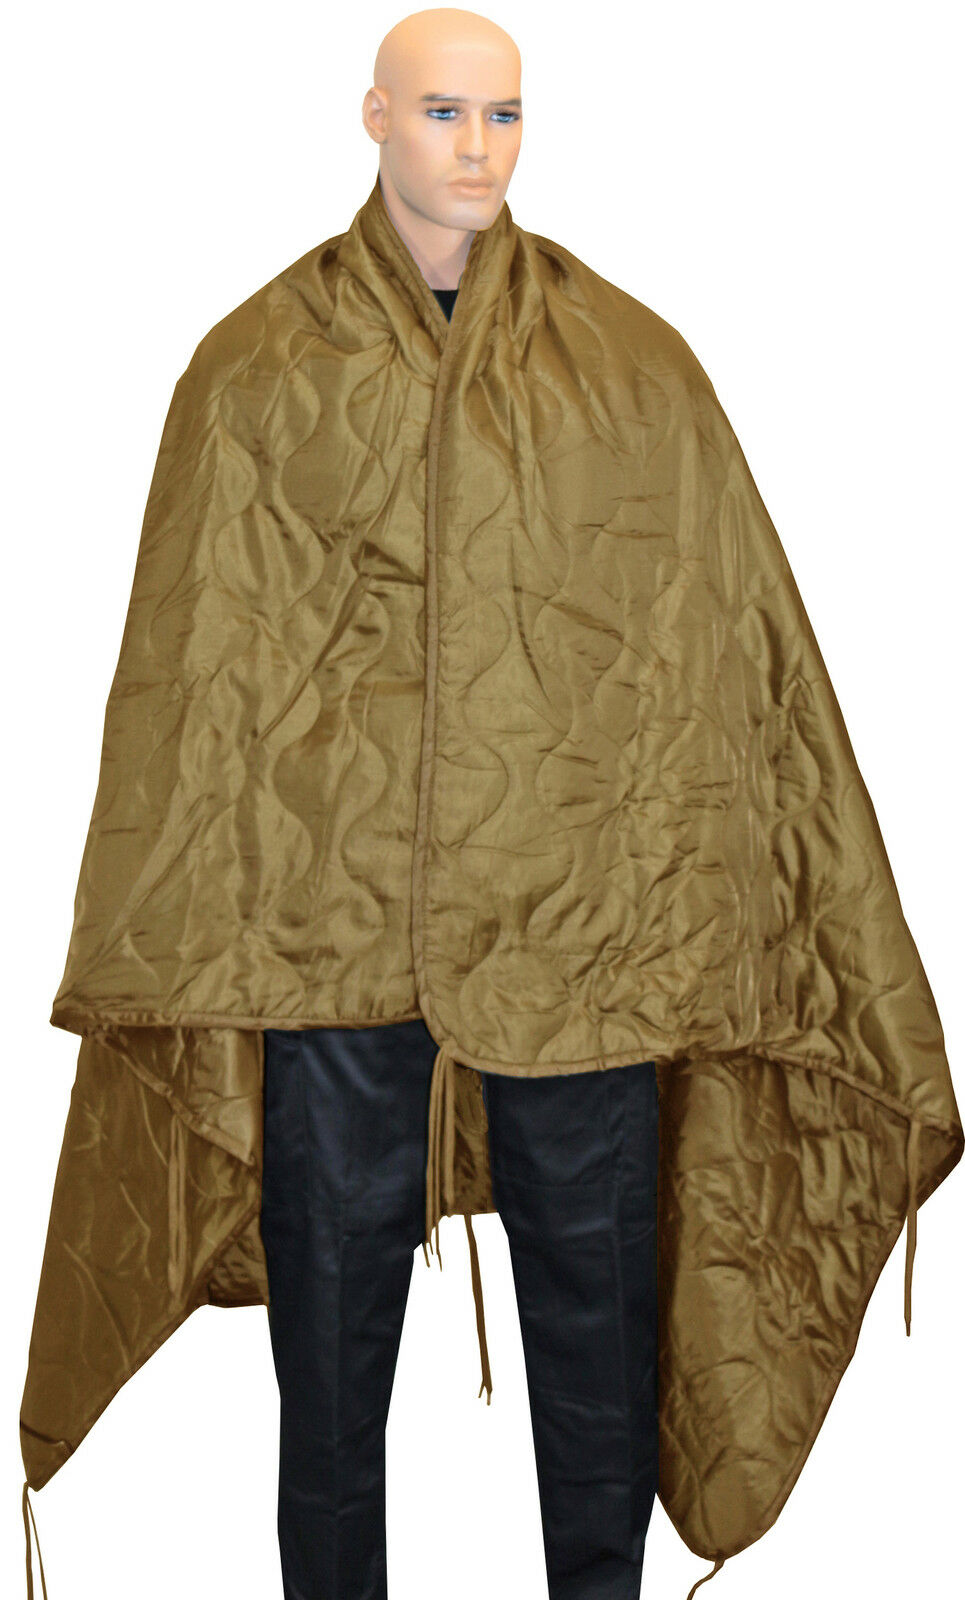 Rip Stop Poncho Liner Coyote - Multi Functional  Thermal Emergency Borsa termica  shop online today